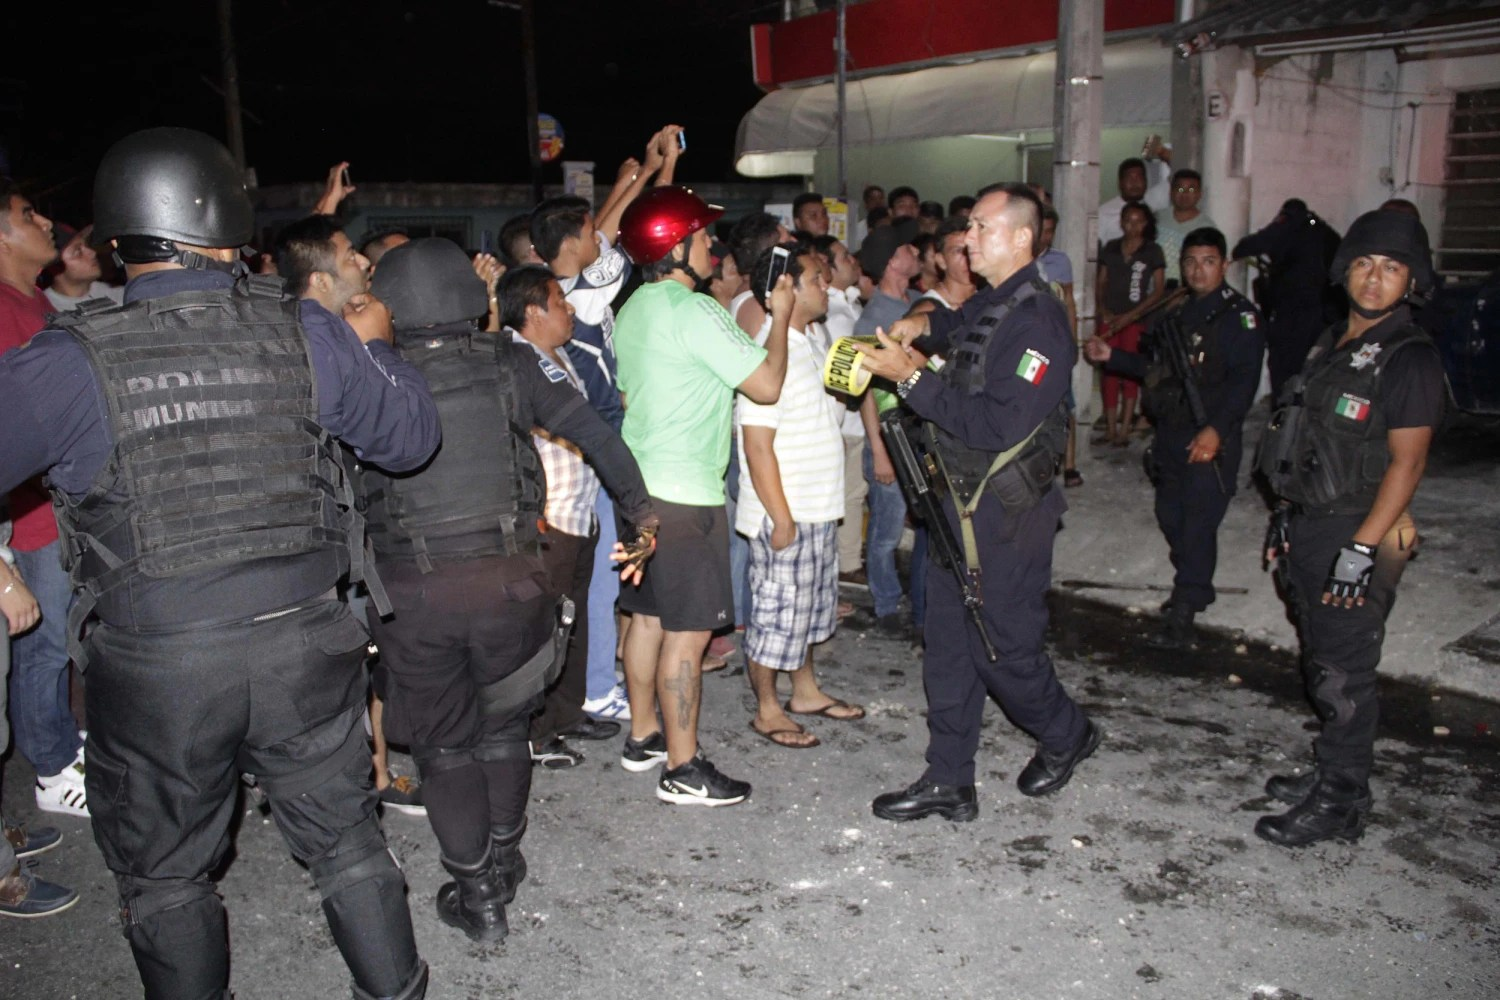 Mexican mob attacks Russian man in Cancun over insults